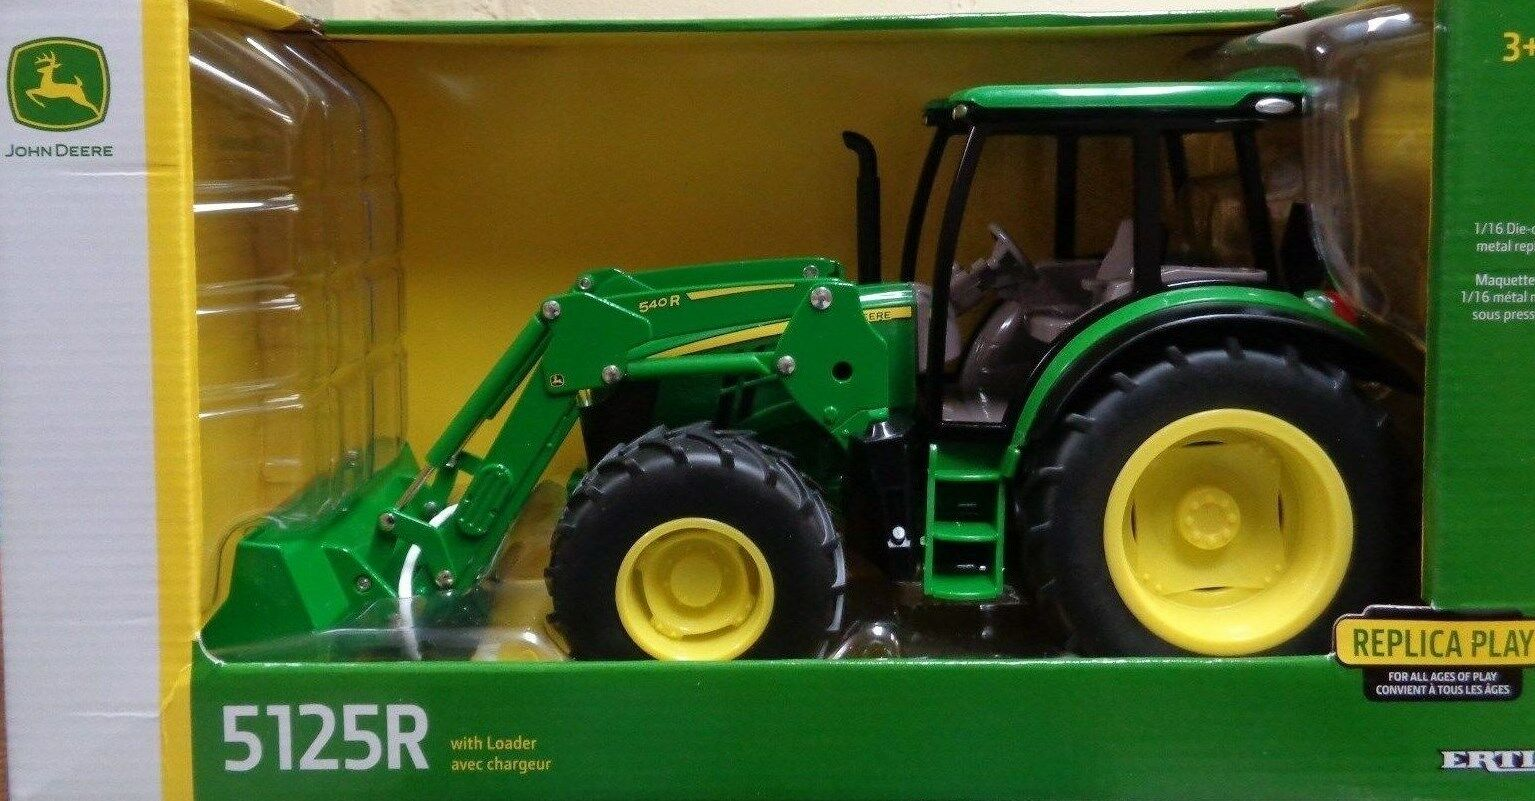 NEW John Deere 5125R Tractor with 540R Loader 1 16 Scale, Ages 3+ (LP64408)